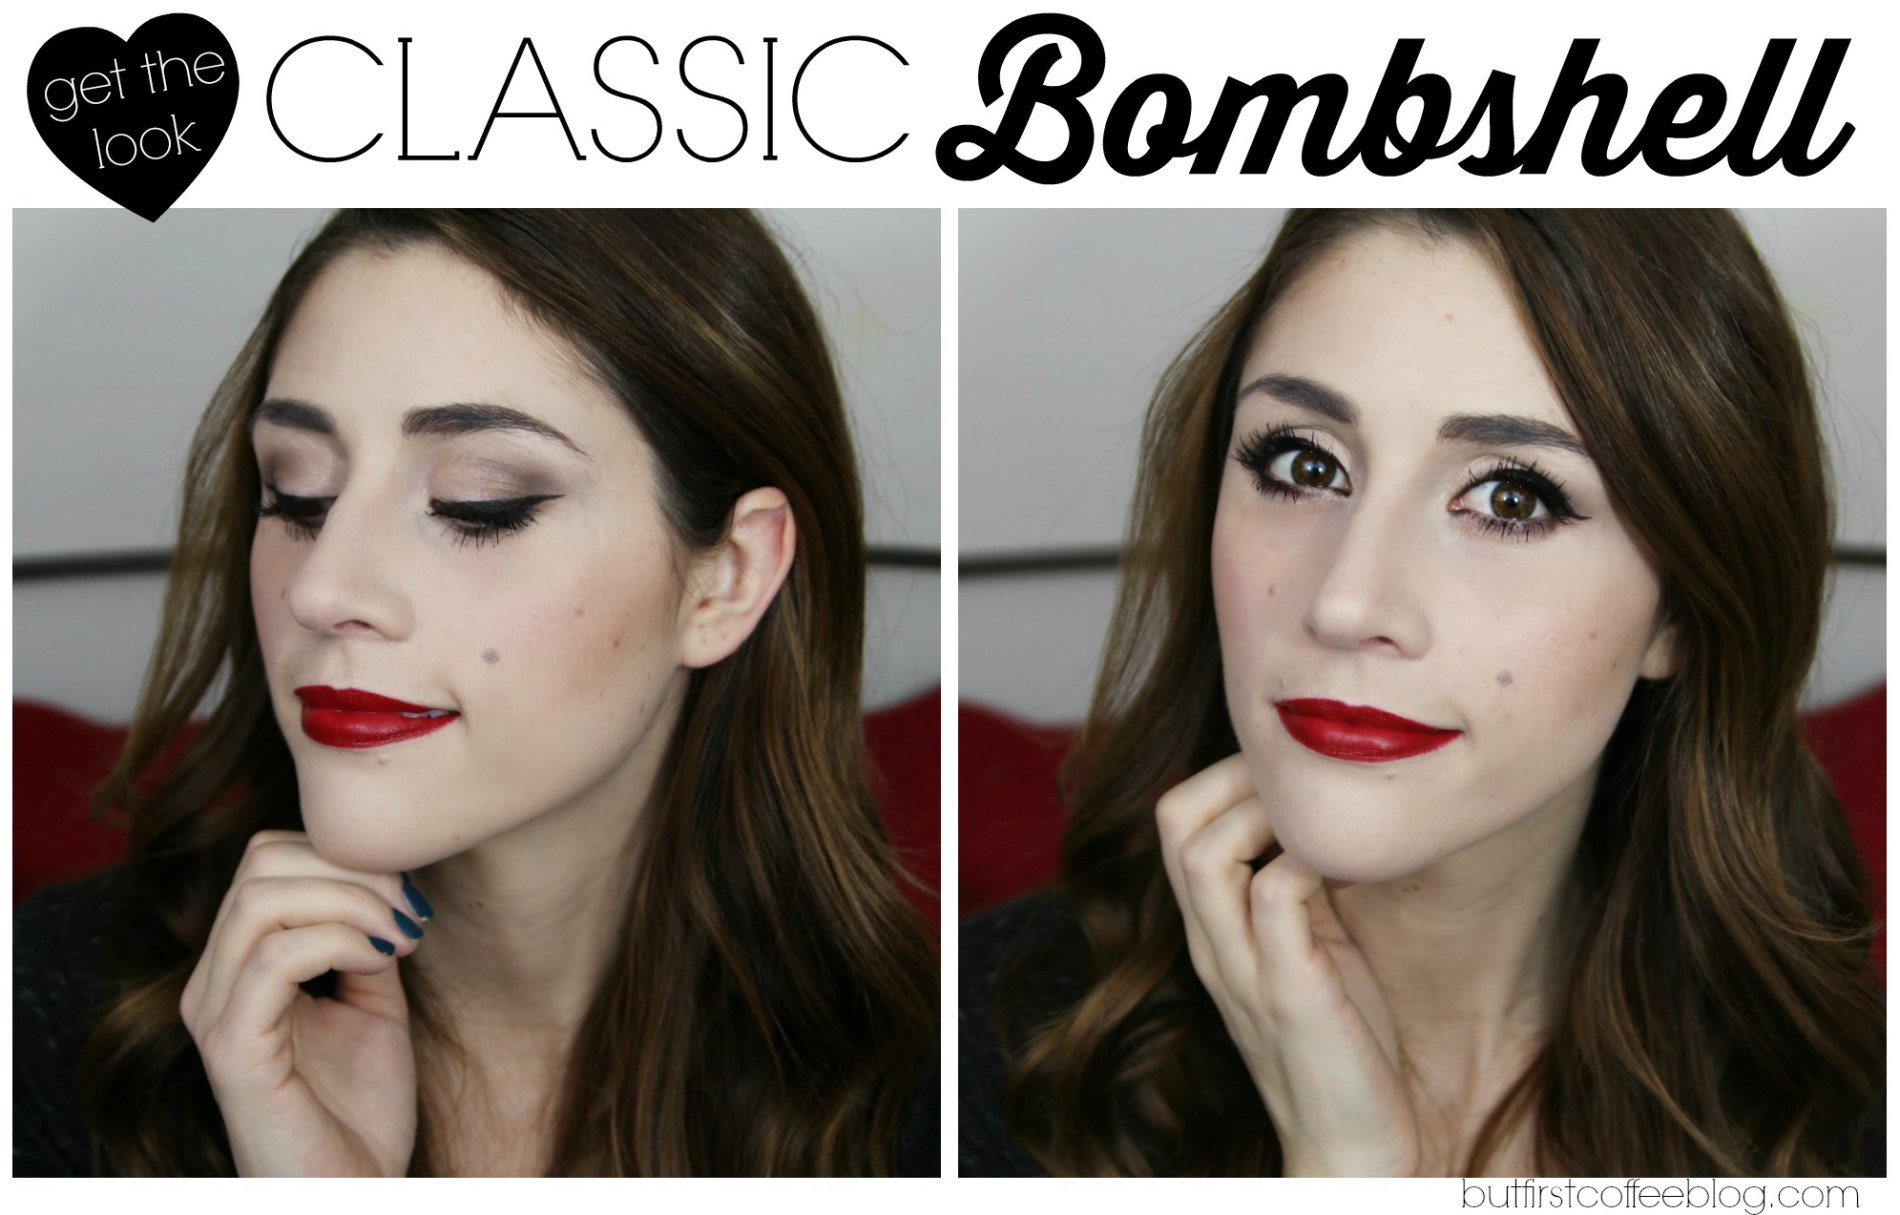 Classic Valentine's Day - Bombshell Makeup